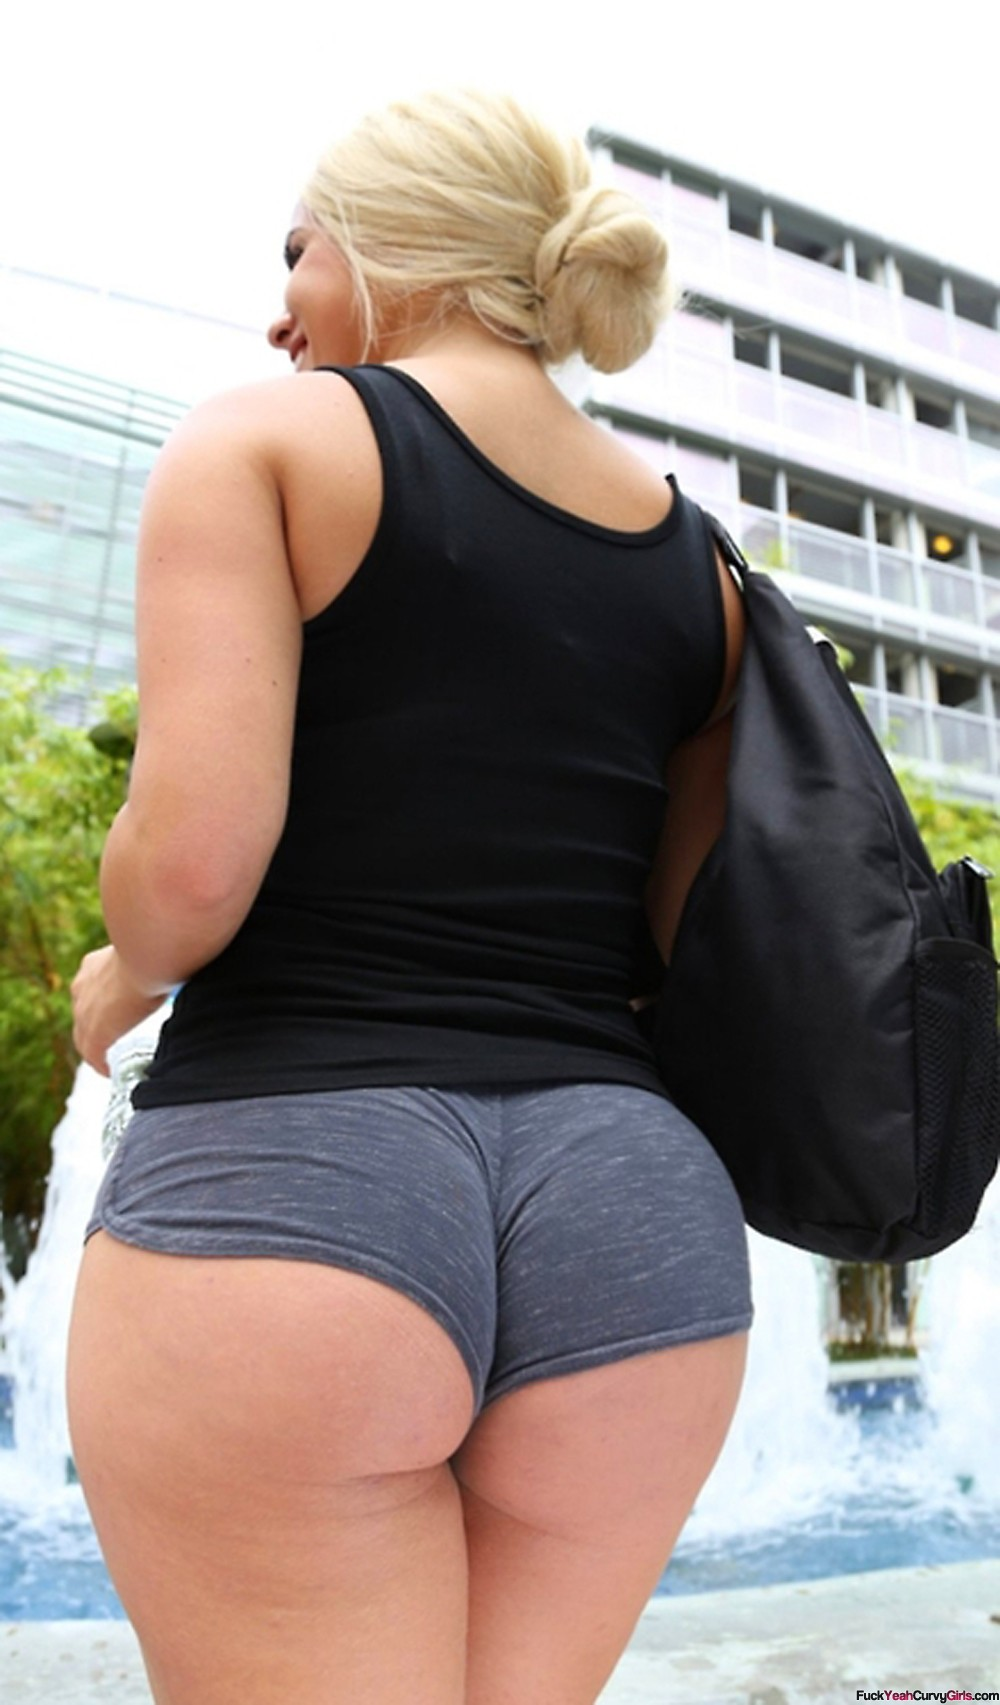 Ass booty big shorts pawg